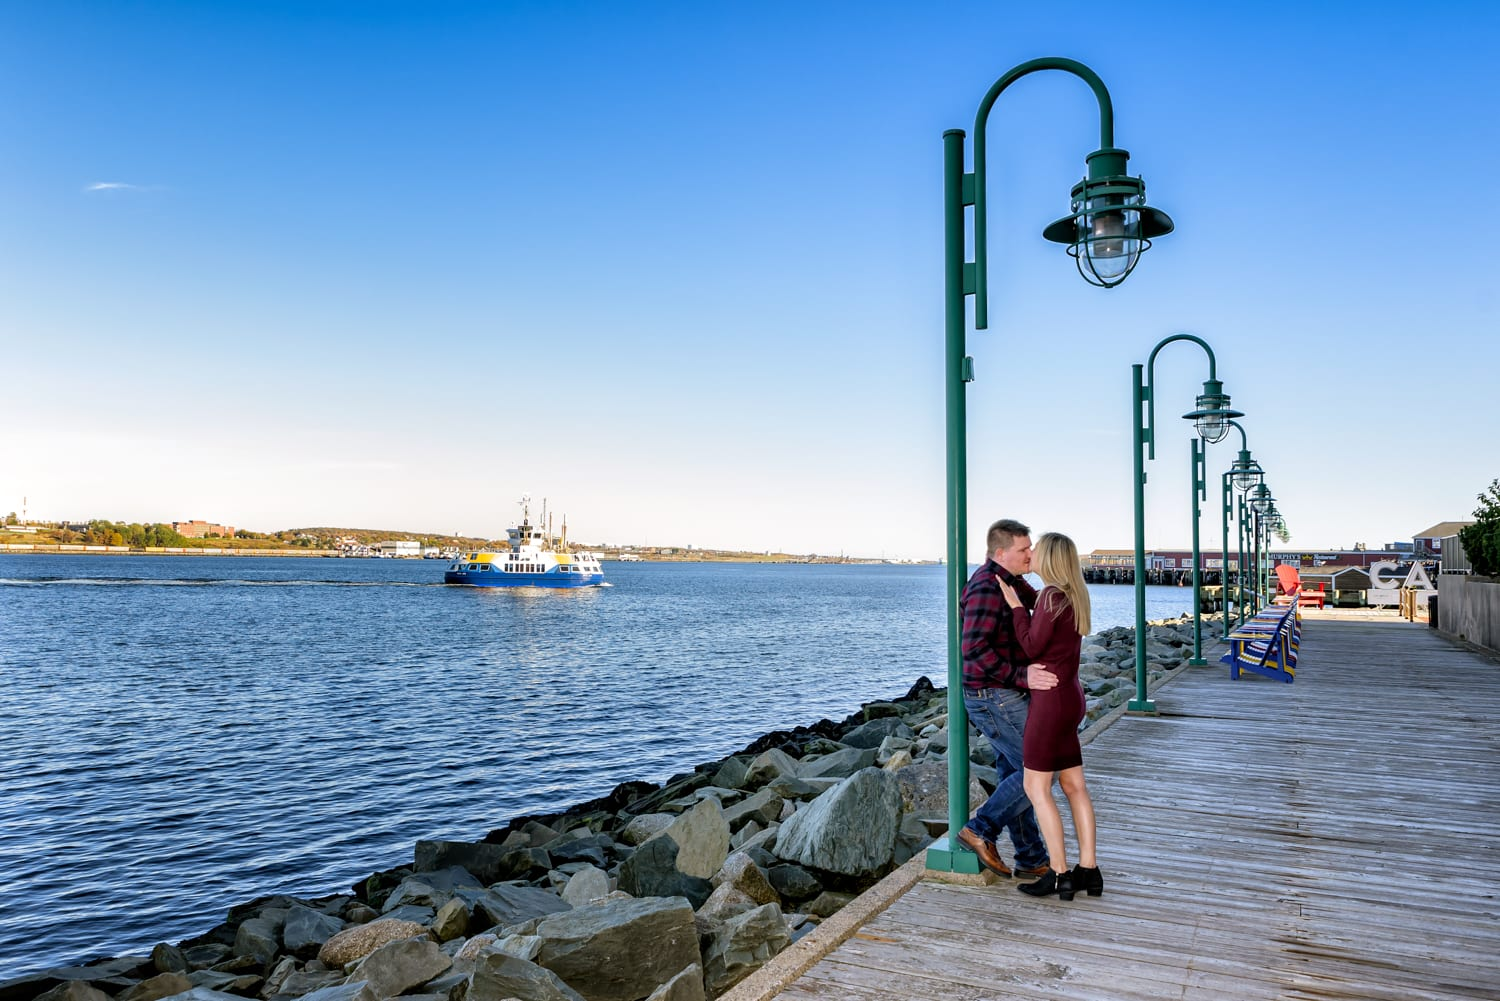 A cute couple pose on the halifax waterfront with the Halifax ferry in the background for their engagement photos.